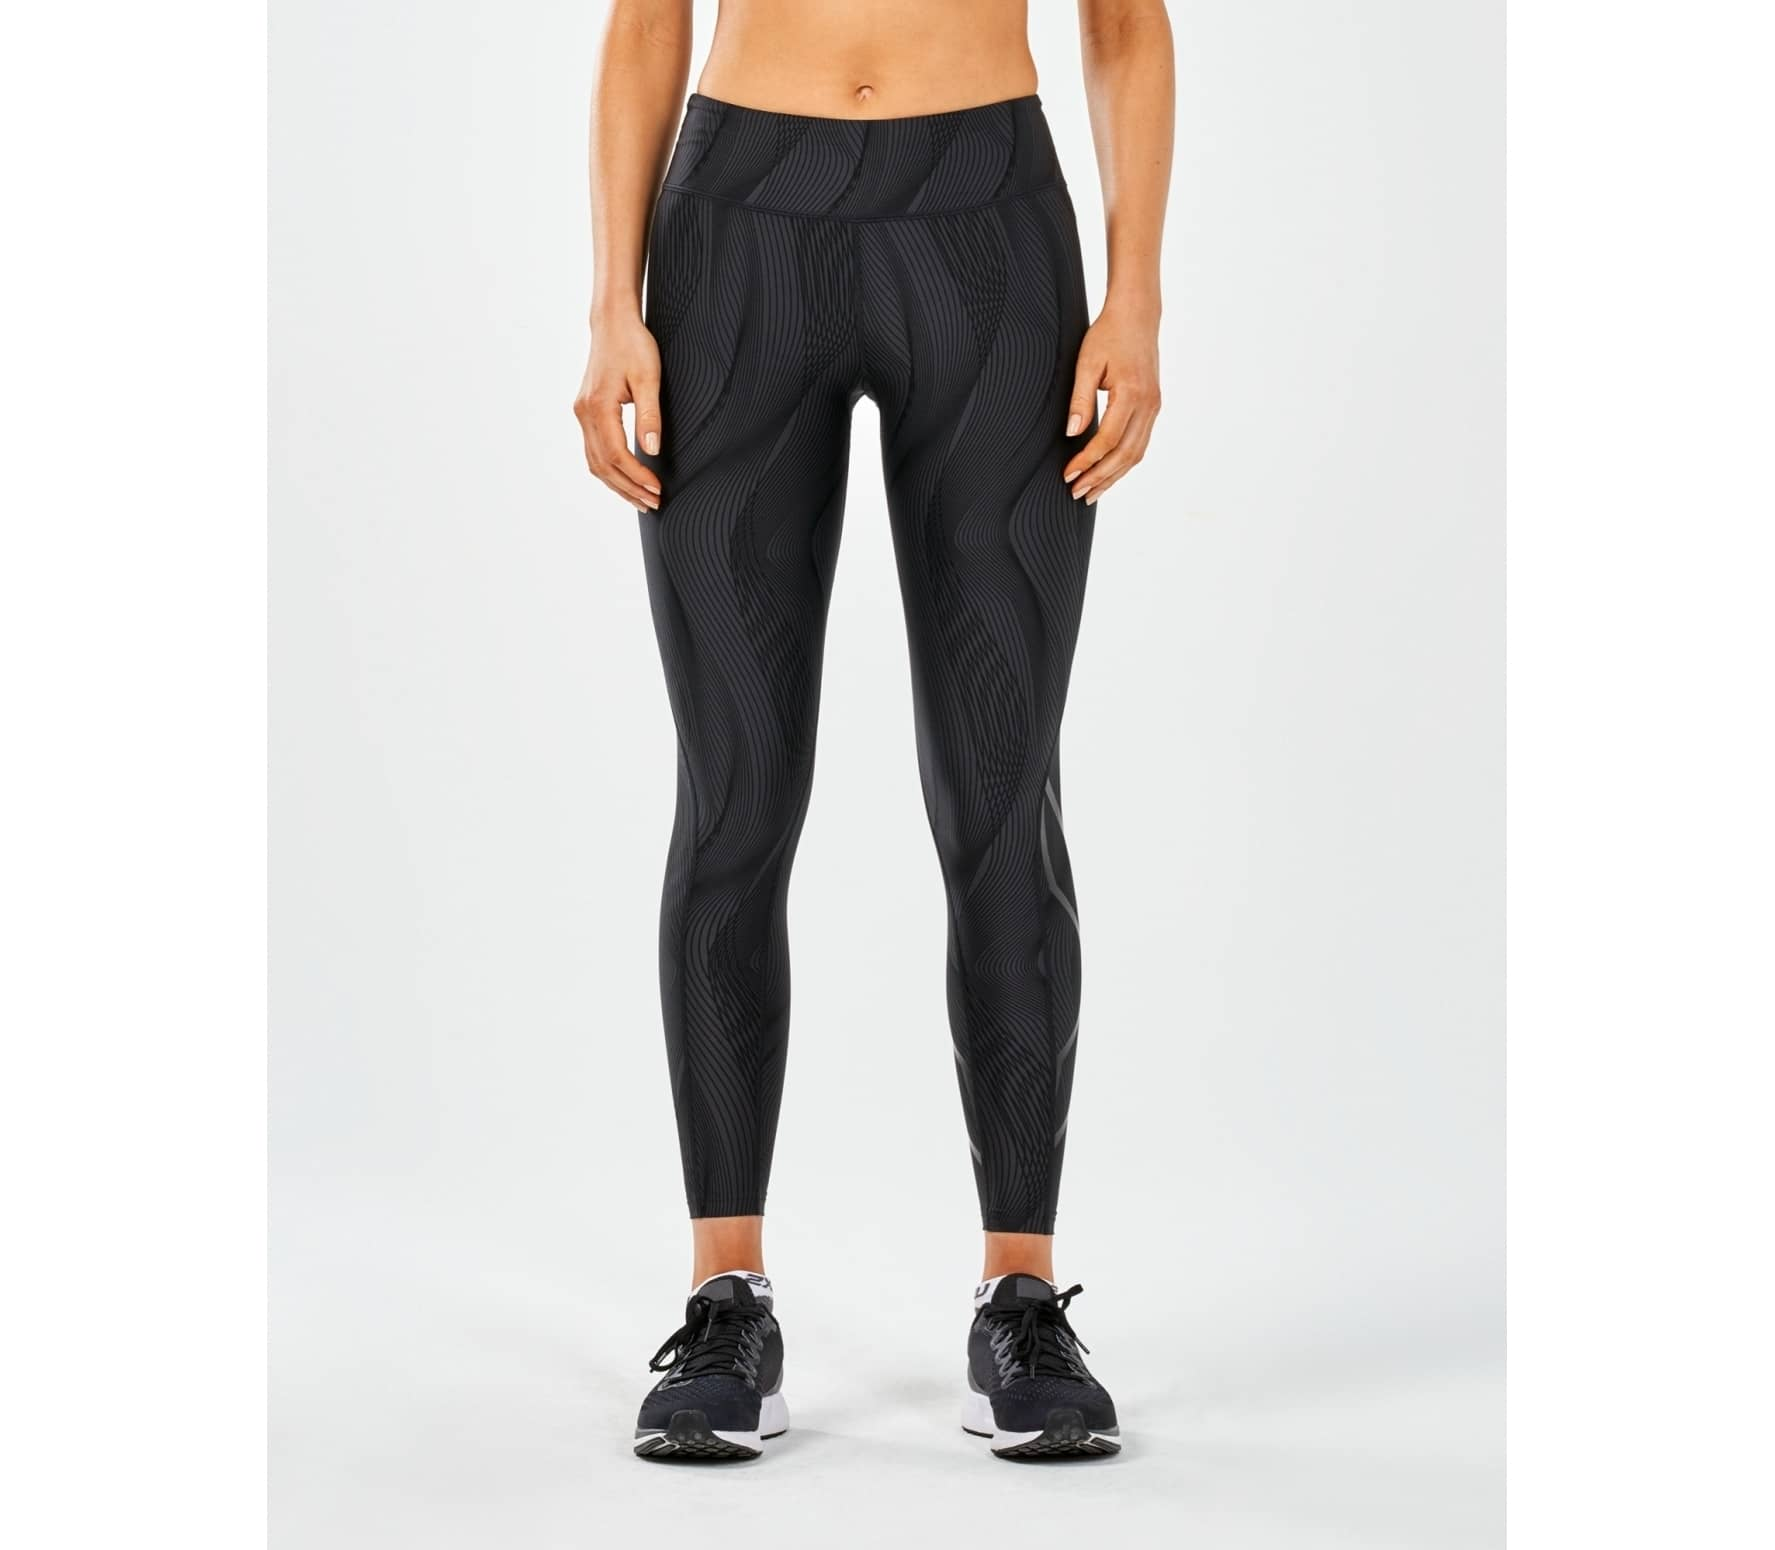 a1d2176741 2XU - Print Mid-Rise Compression Tights with Storage women's running pants  (black)